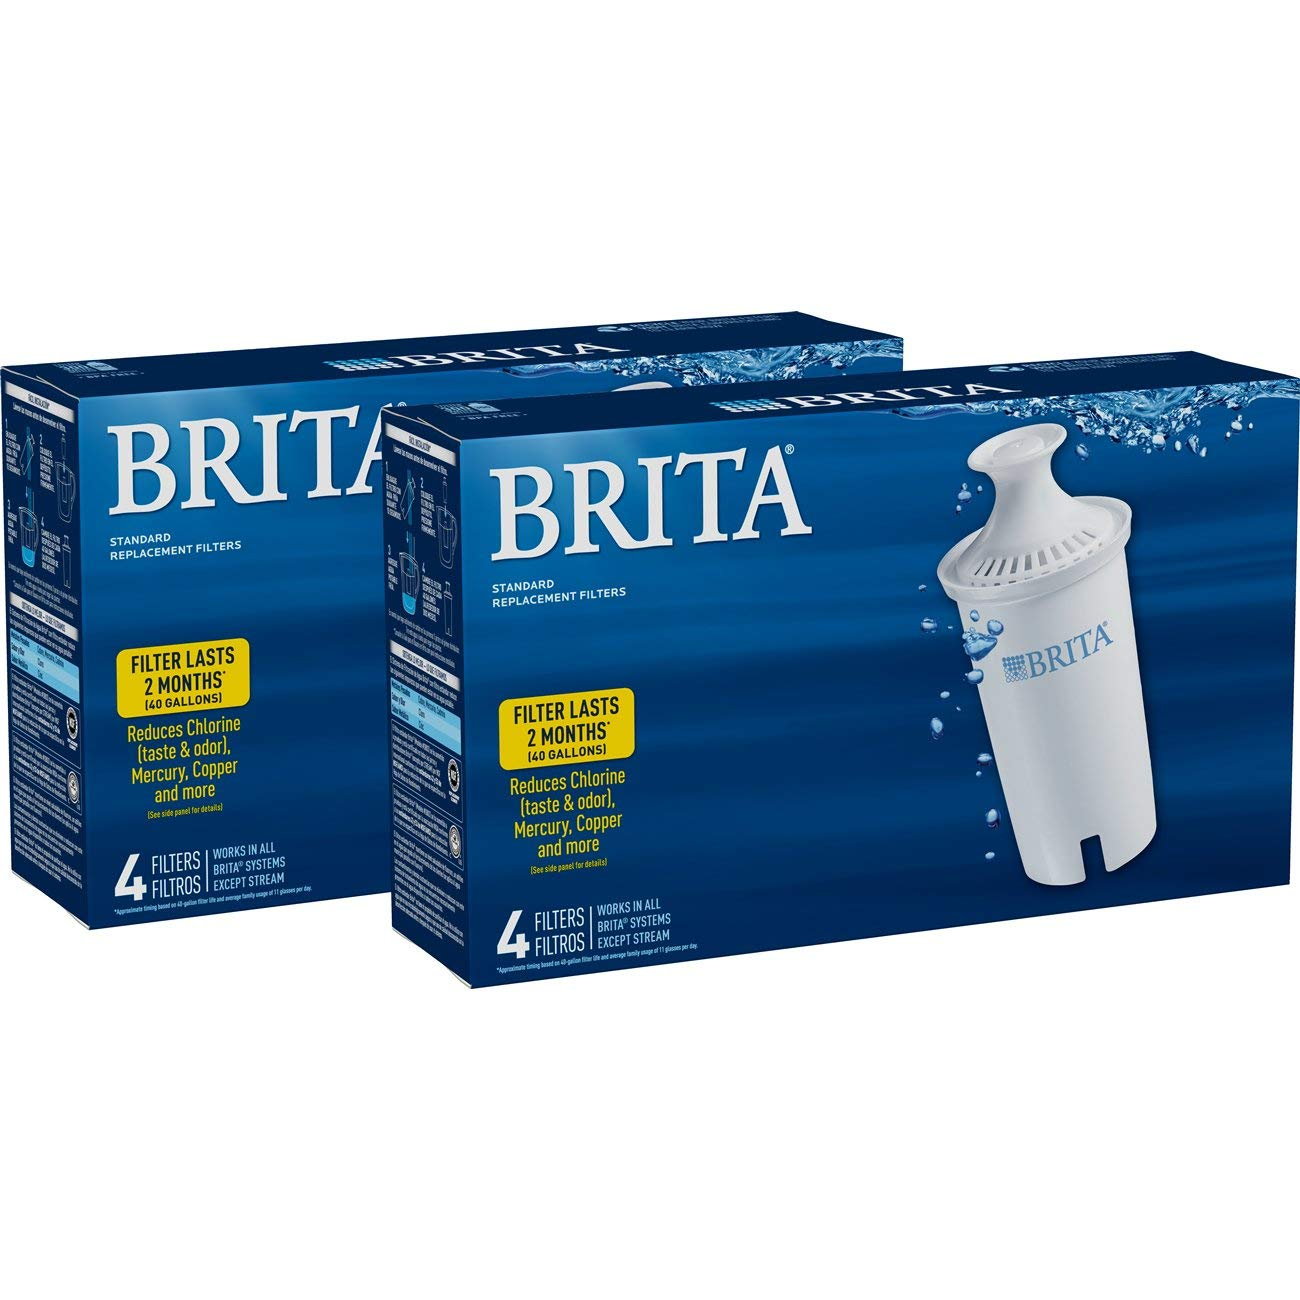 Brita Standard Water Filter, Standard Replacement Filters for Pitchers and Dispensers, BPA Free - 8 Count by Brita (Image #5)